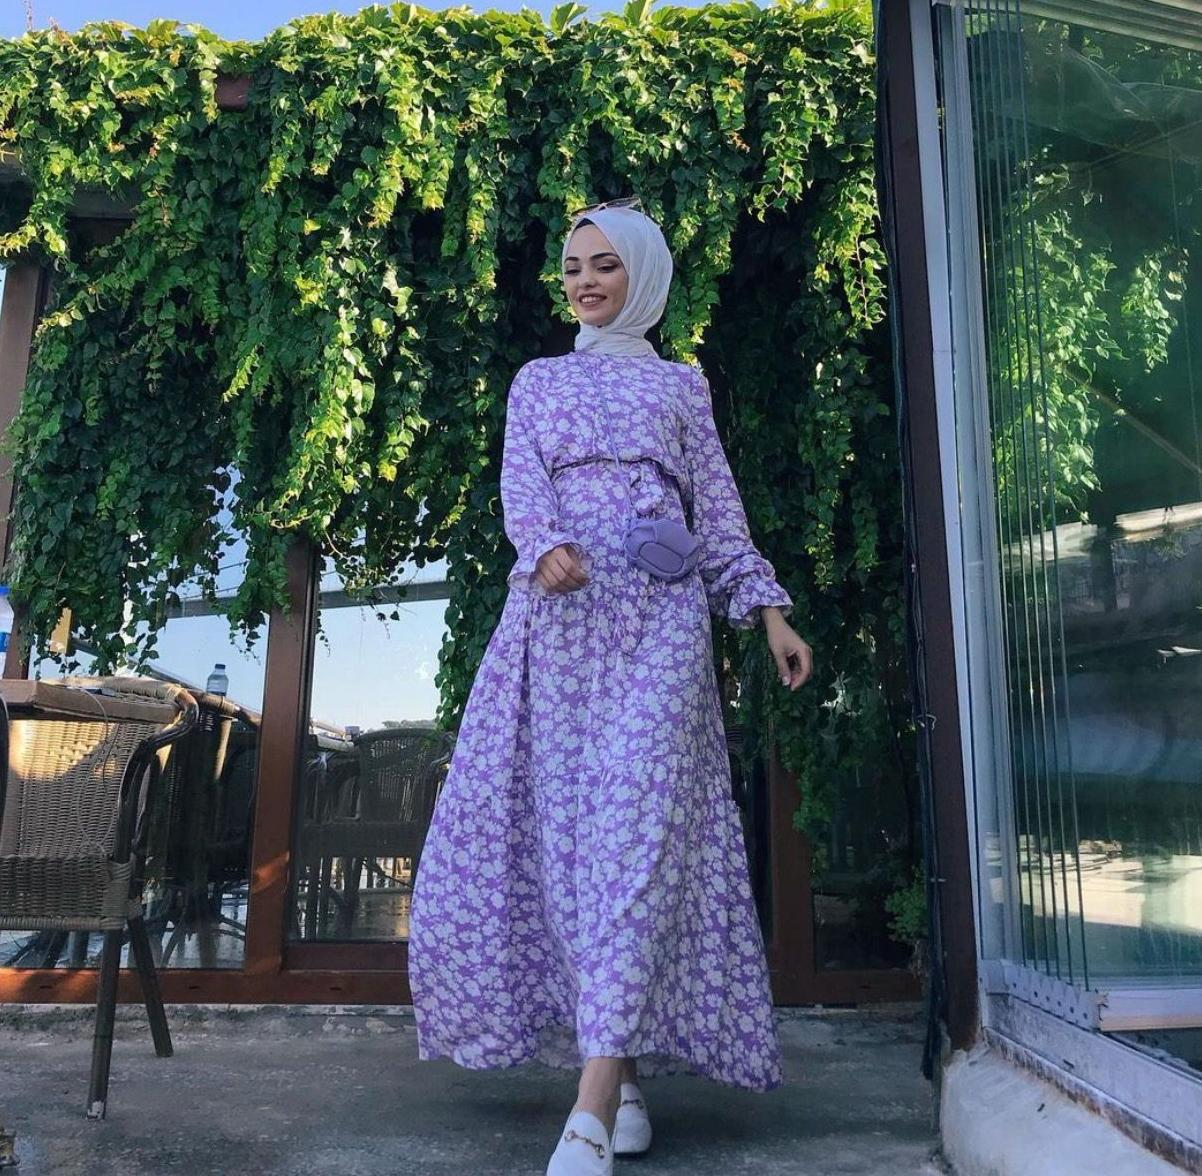 Casual Garden Party Outfit Ideas You Should Invest In 2022